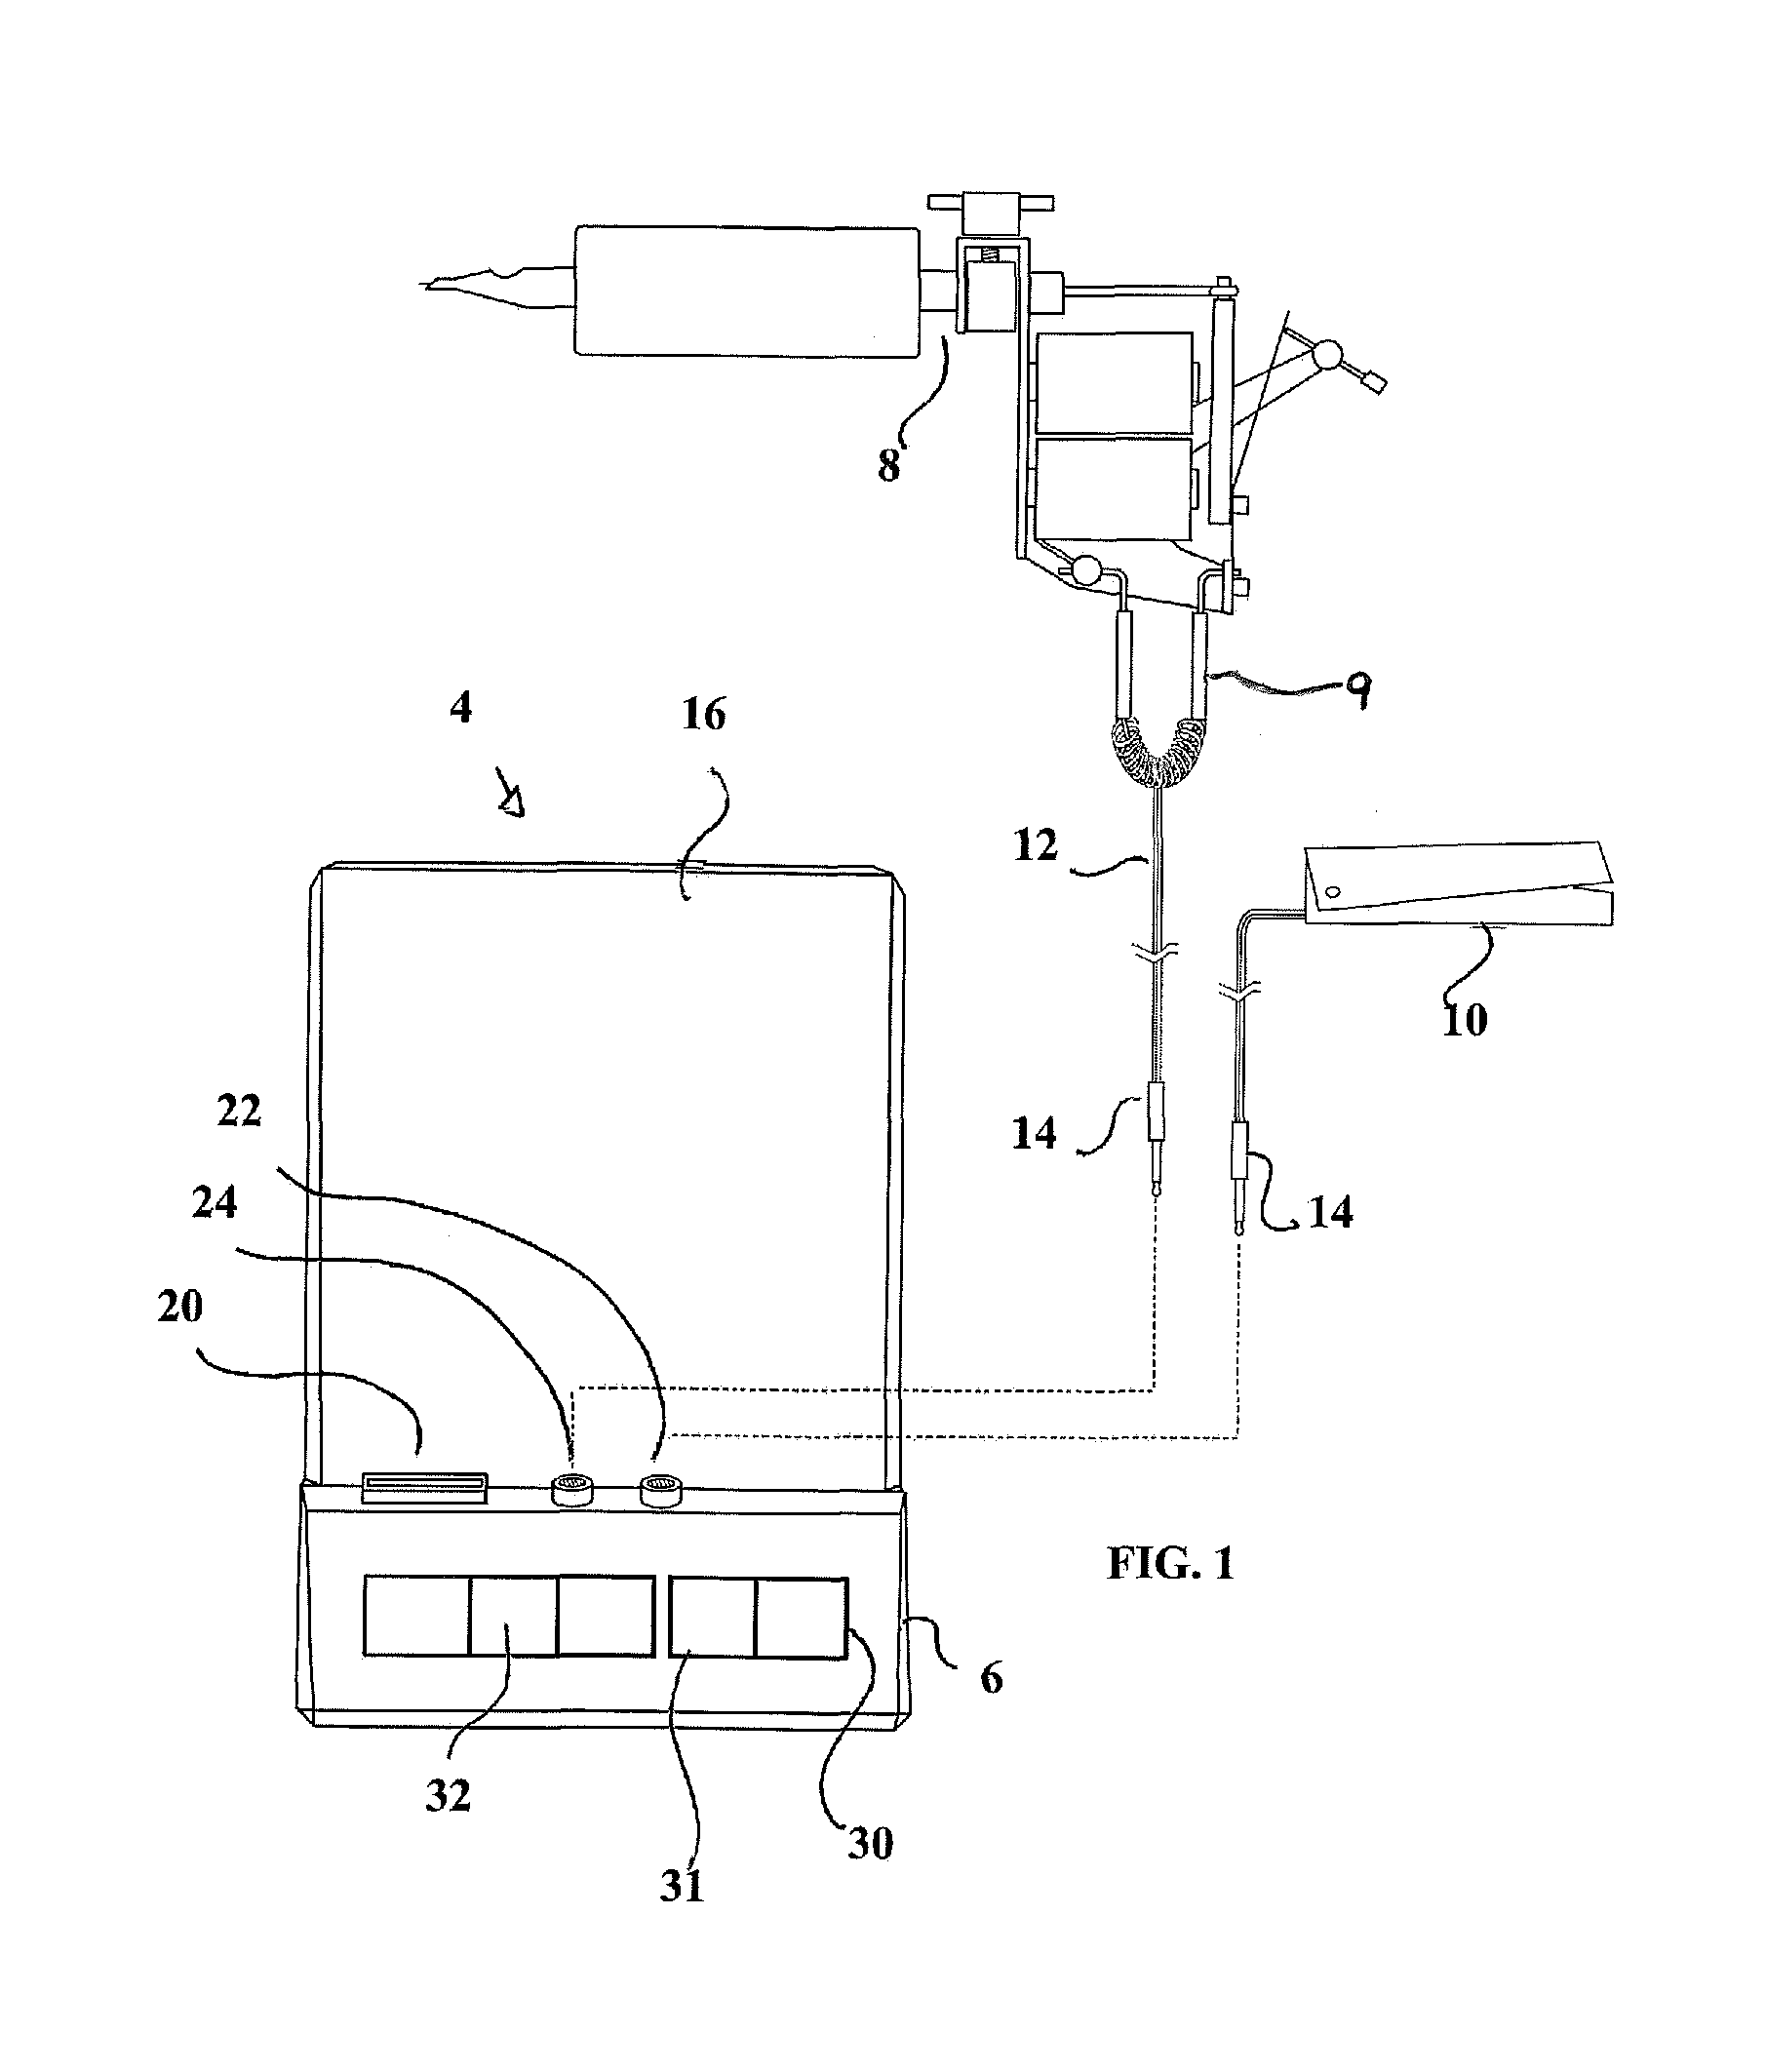 patent us8228666 - retrofit control system and power supply for a tattoo gun